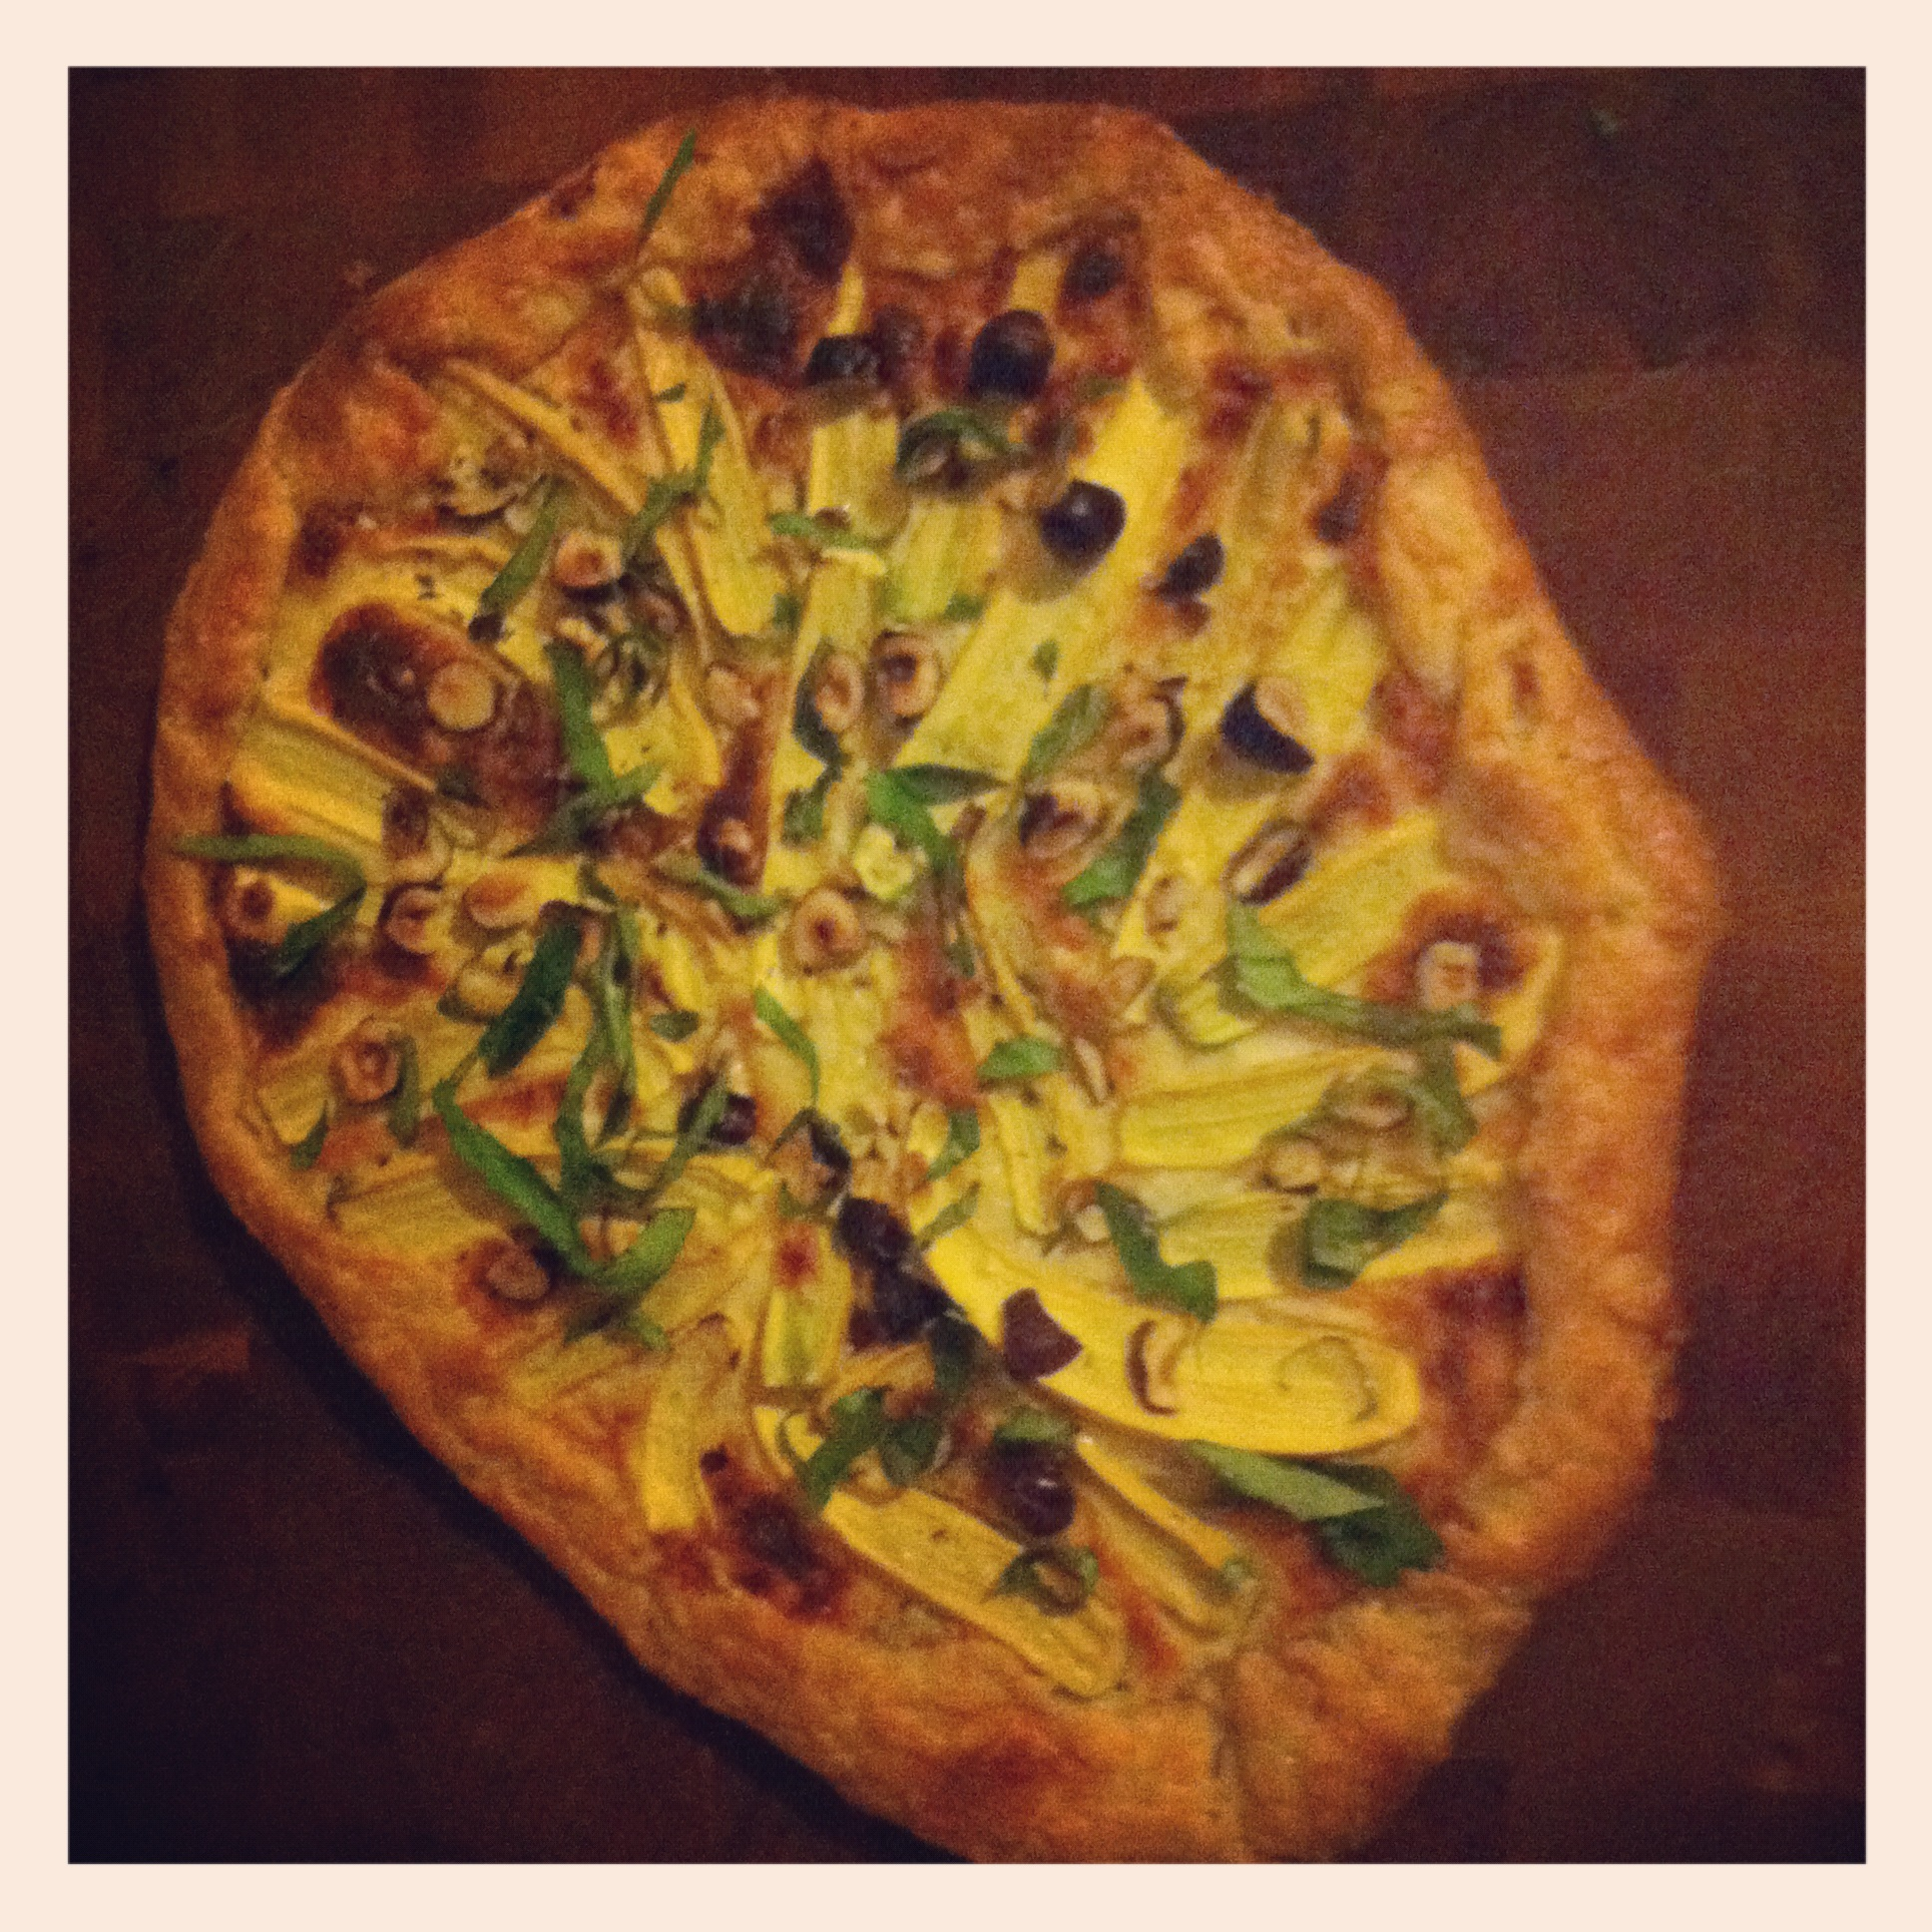 Summer Squash Galette with Chopped Hazelnuts